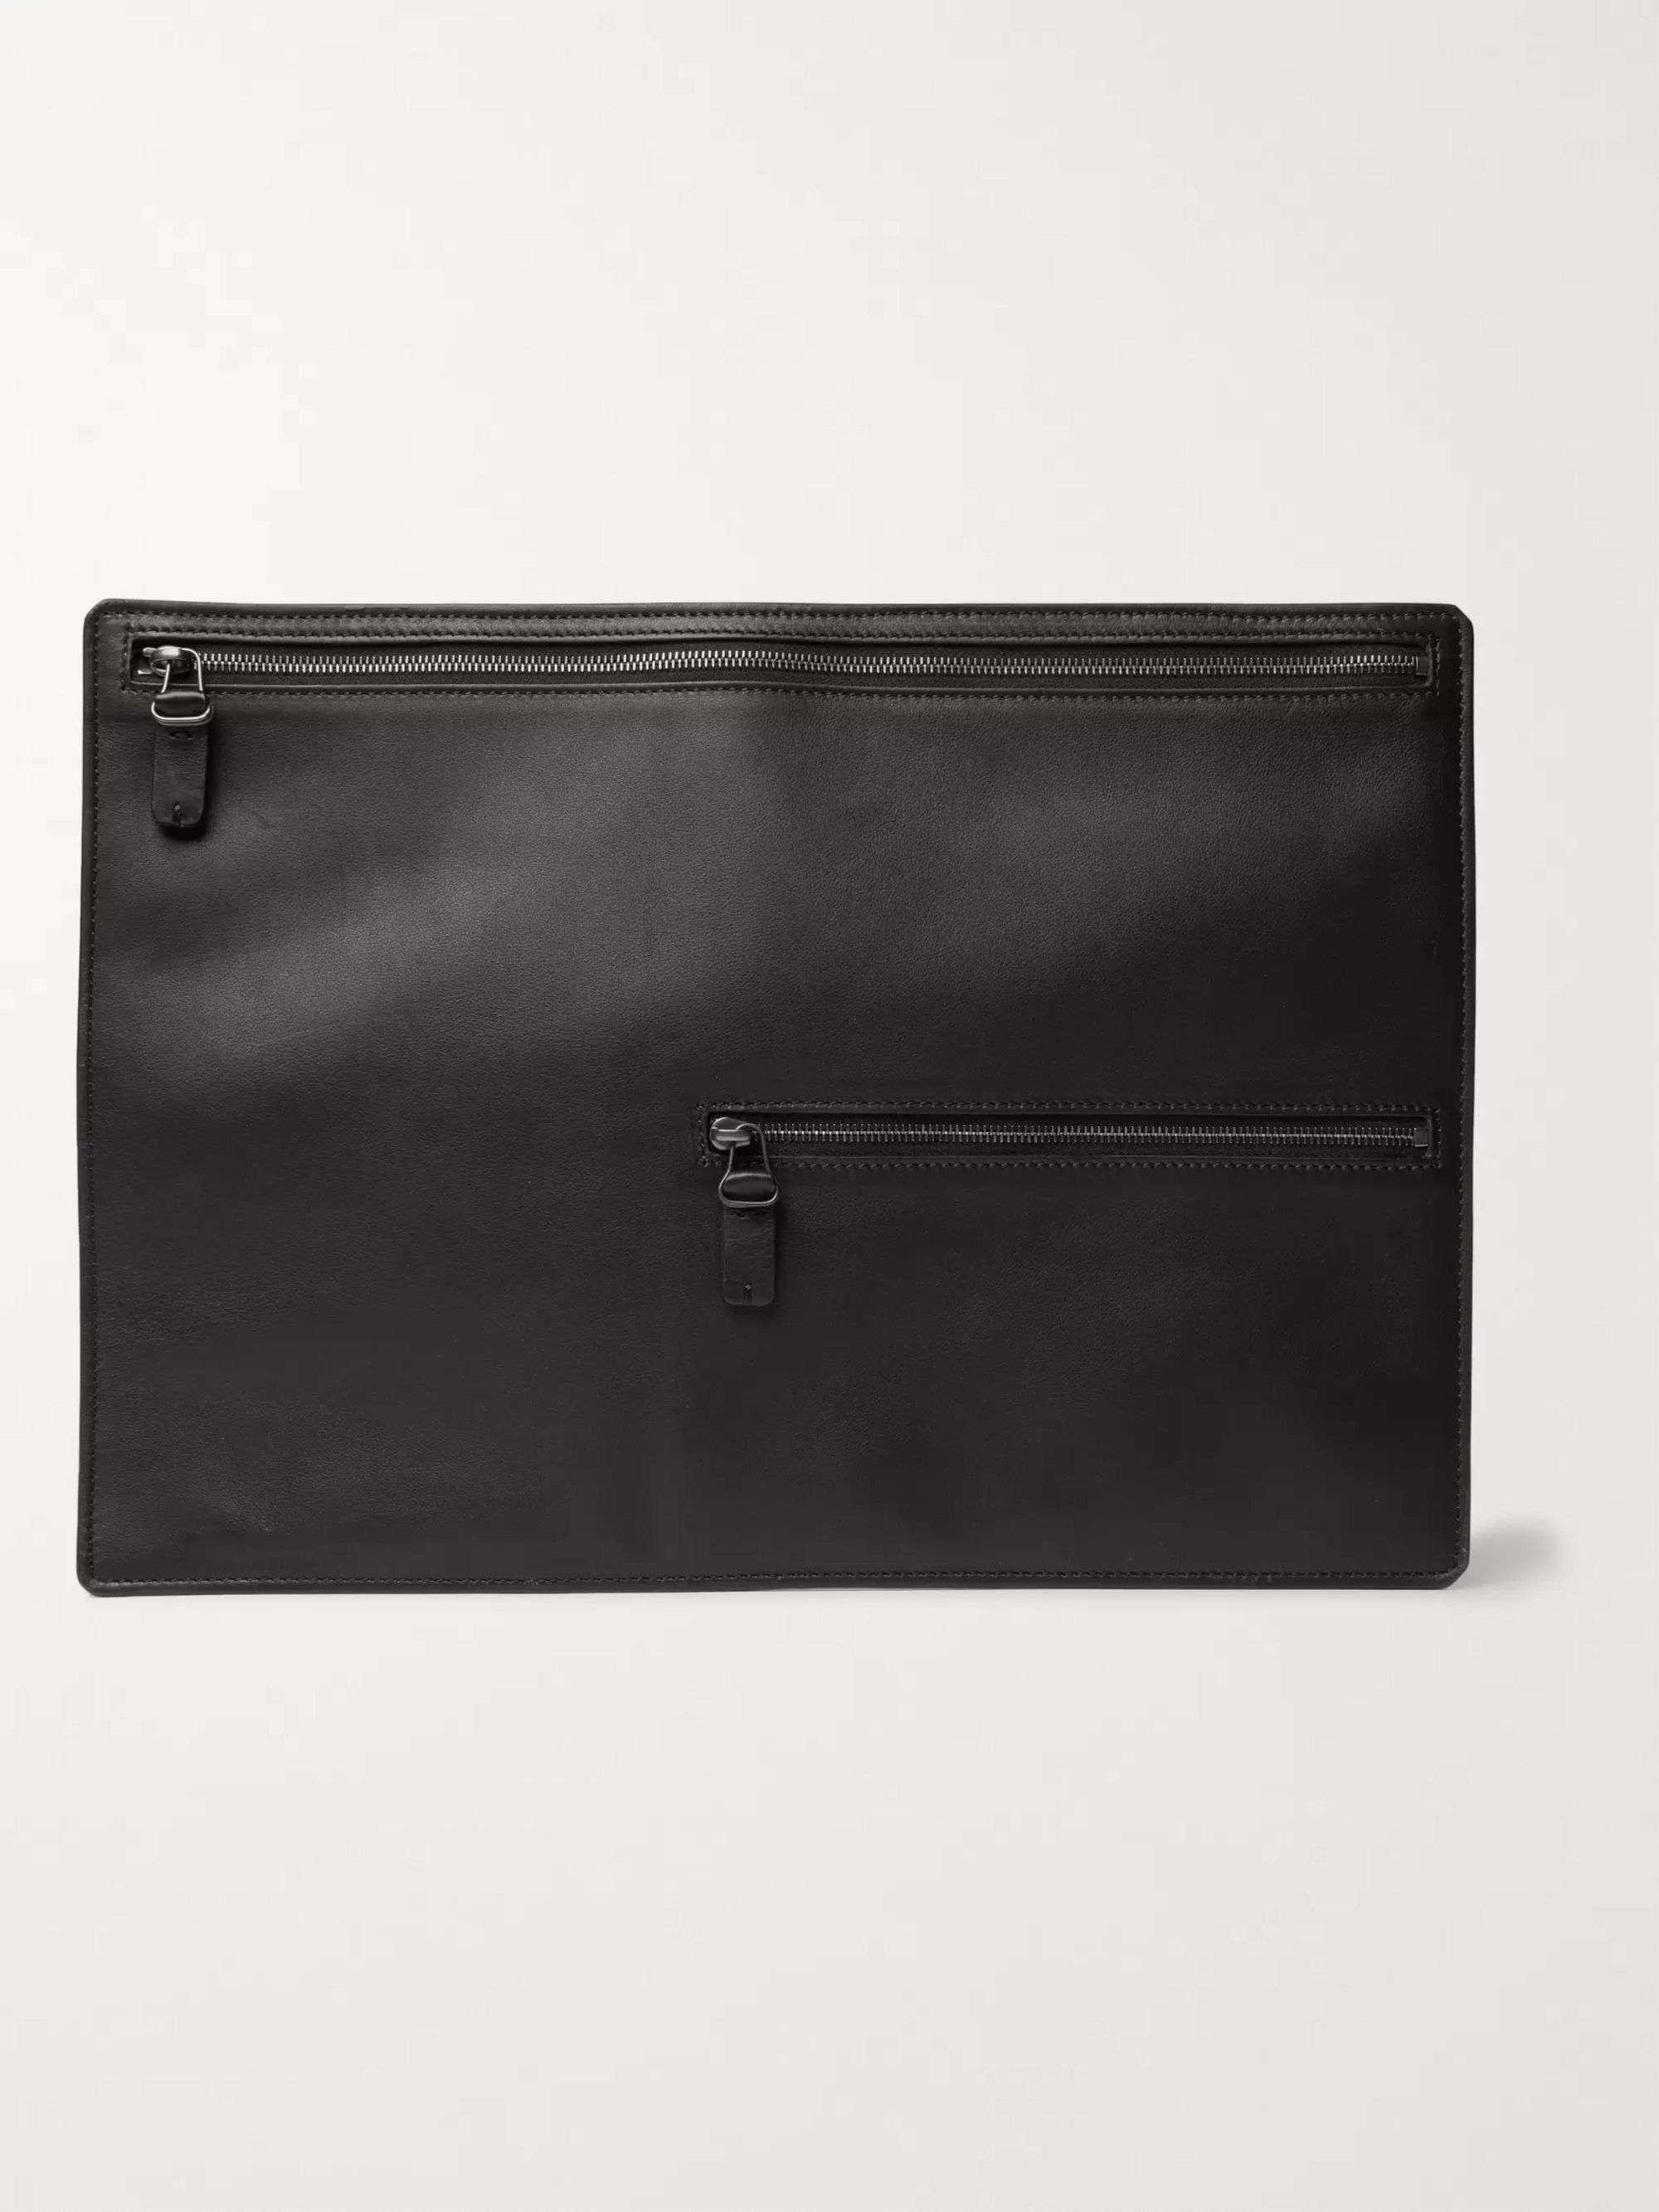 Álvaro Archivia Leather Pouch